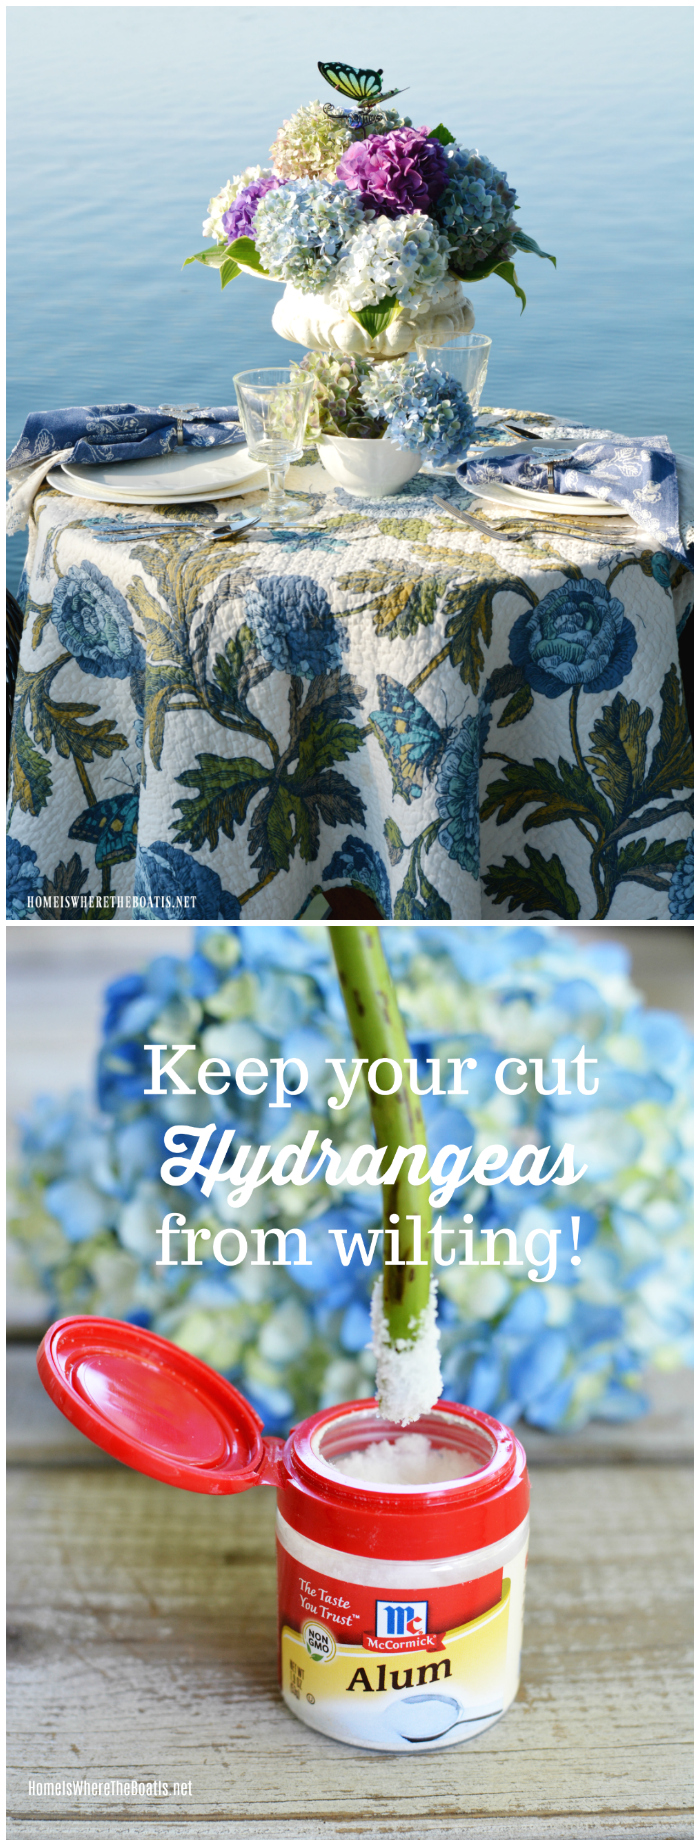 Create a flower arrangement using hydrangeas from the garden and a tip to keep your cut hydrangeas from wilting!